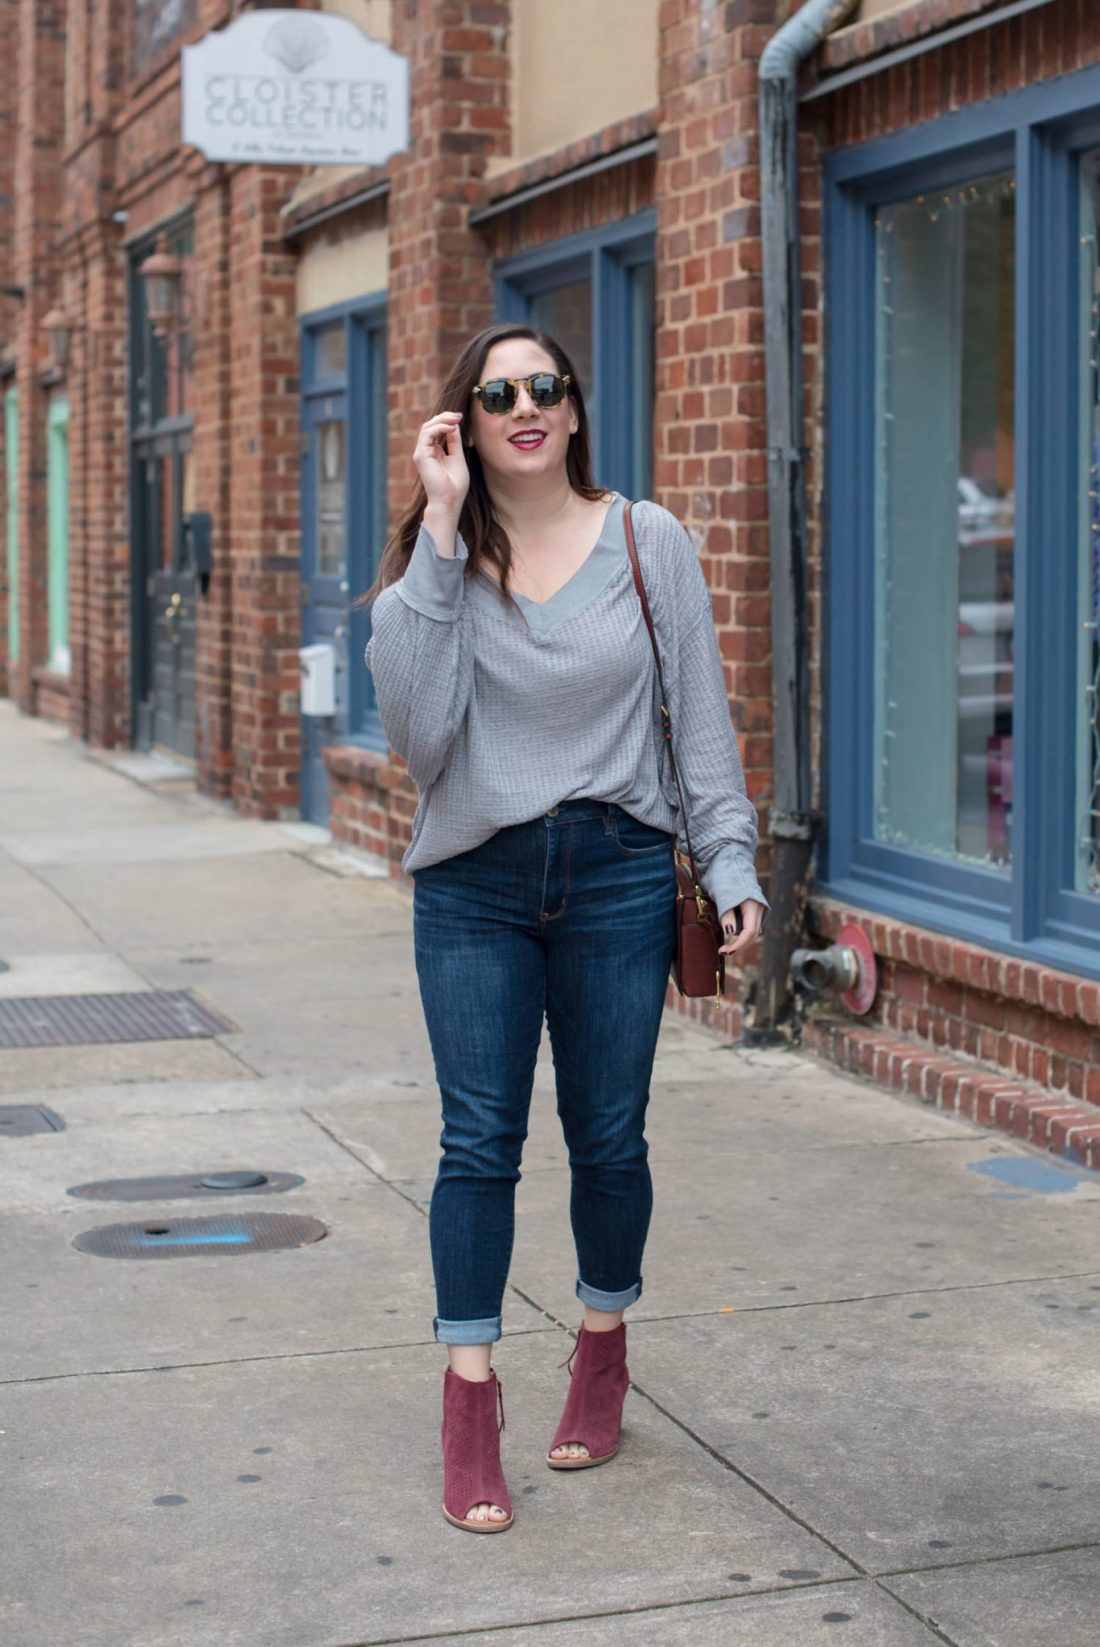 Try the Trend: Slouchy Thermals // Miss Molly Moon | Slouchy Free People Thermal Tops featured by top Atlanta fashion blog, Miss Molly Moon